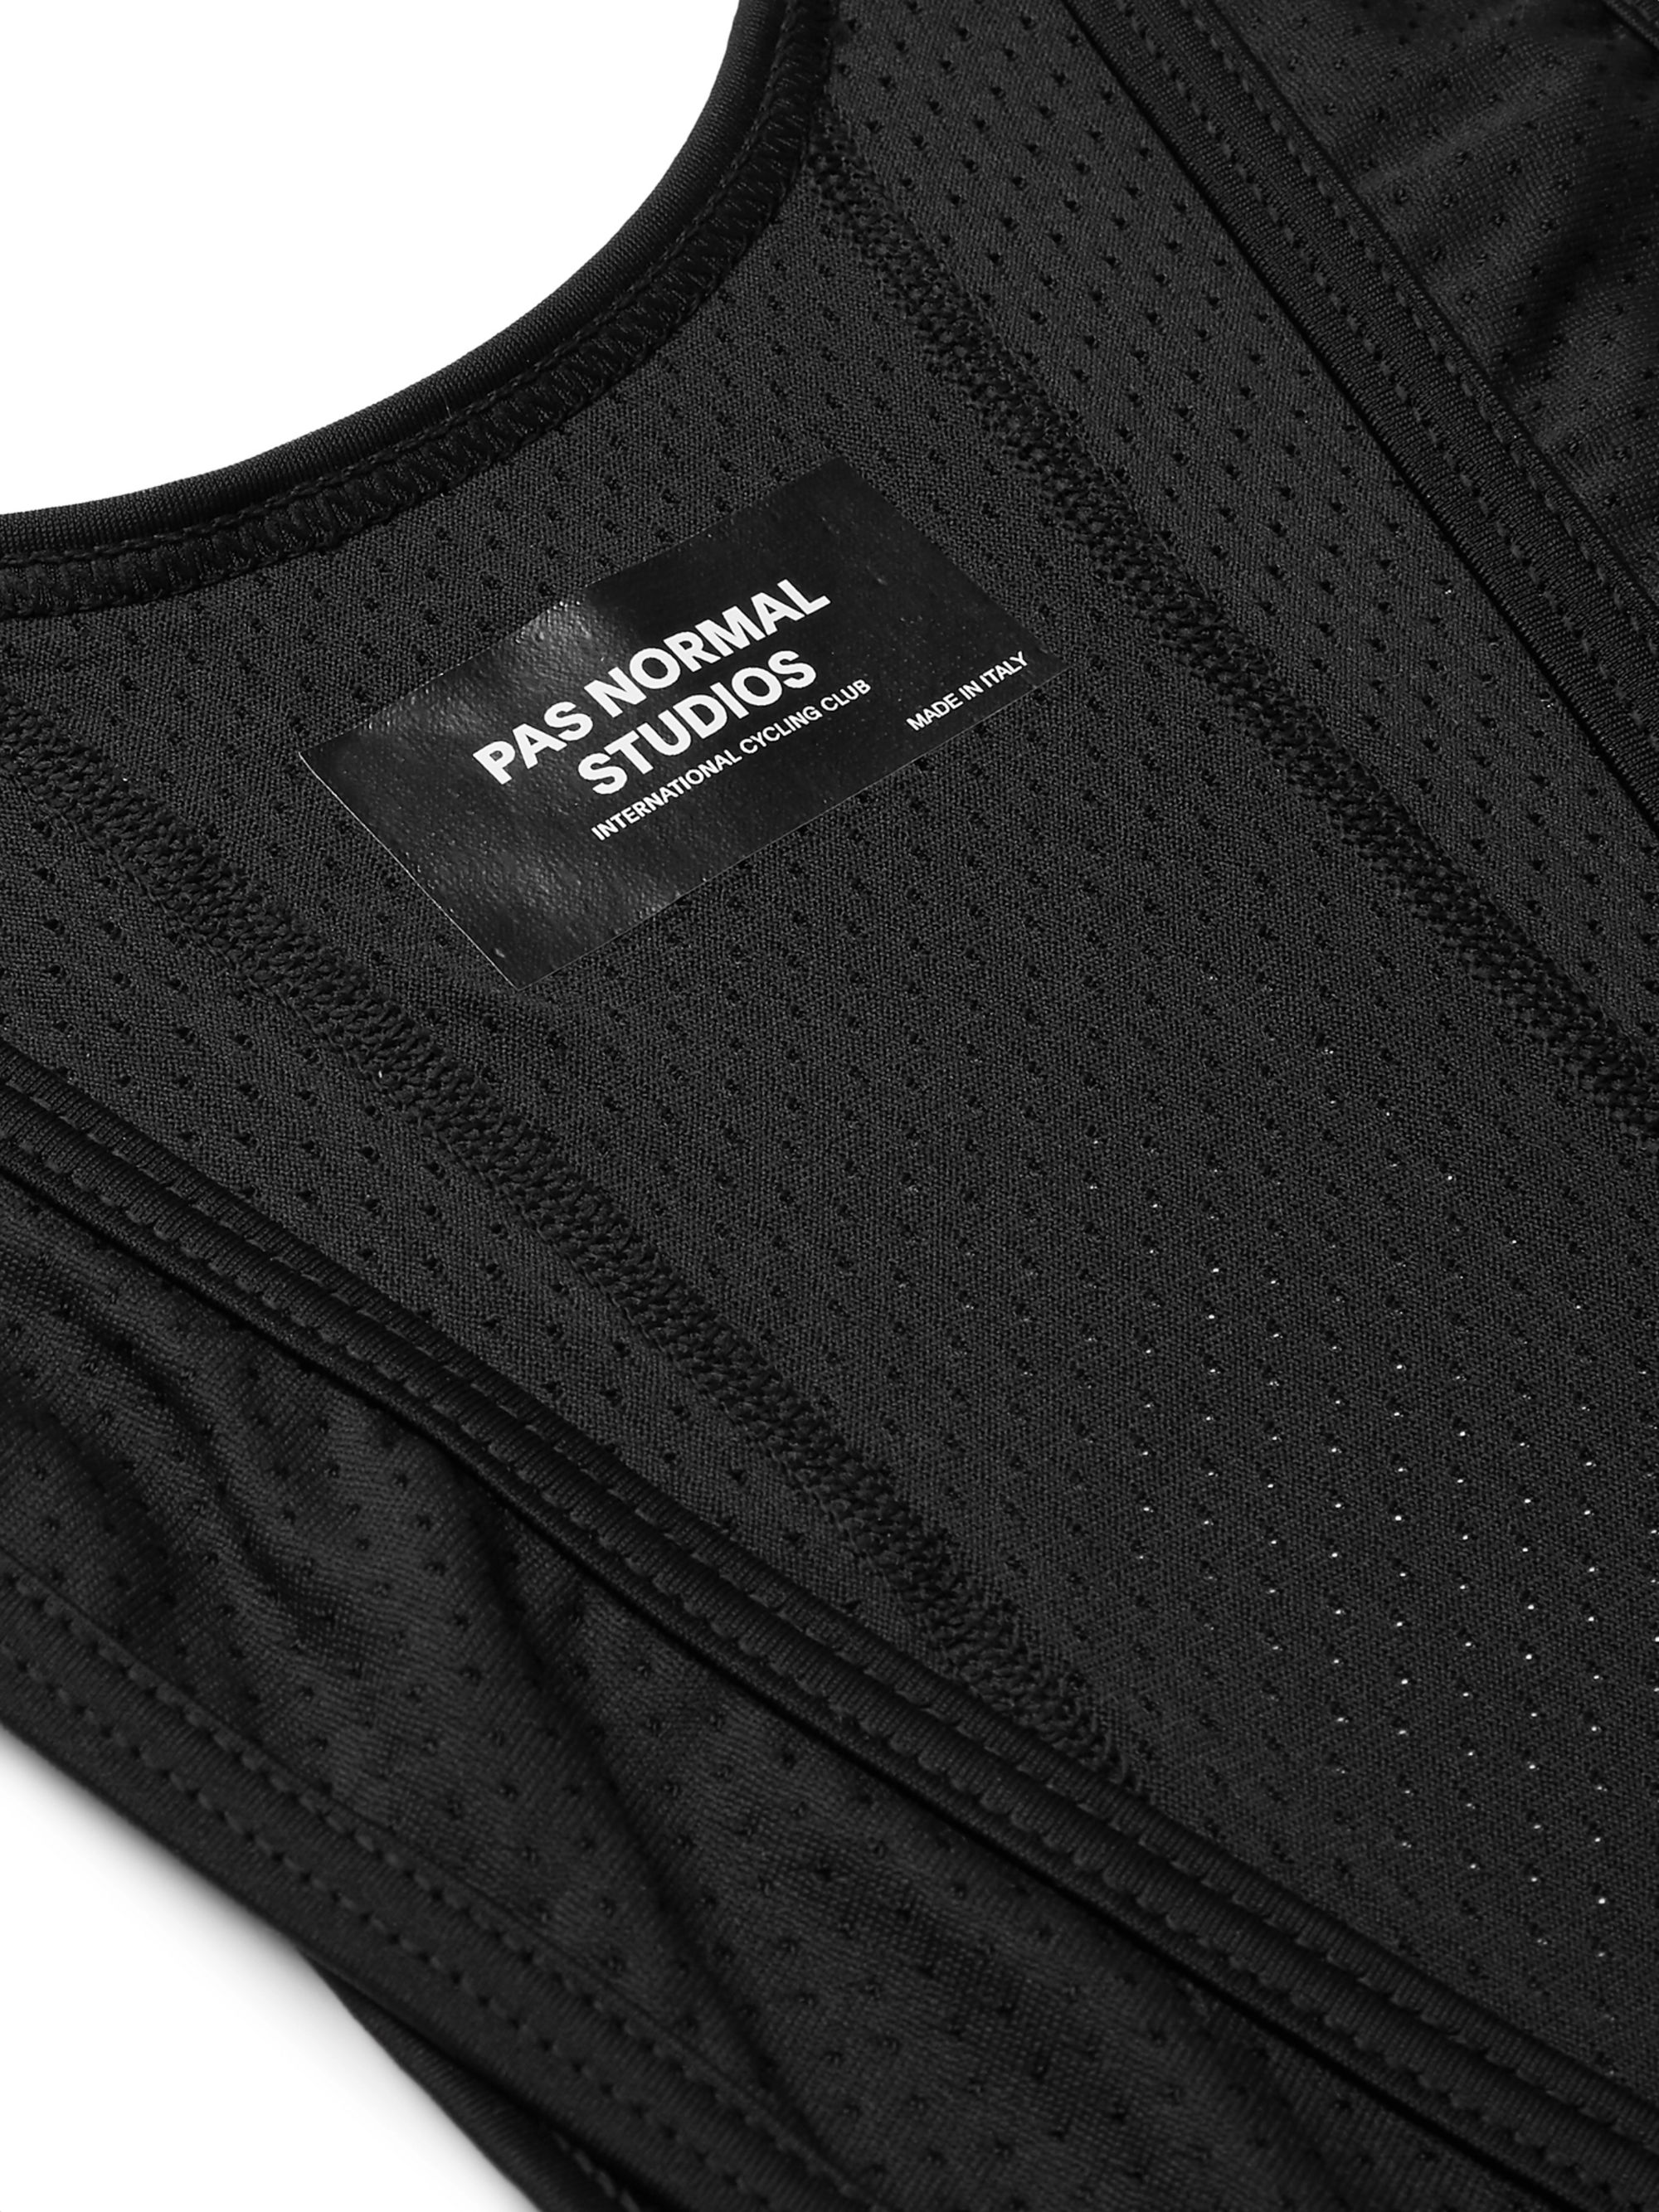 Pas Normal Studios Essential Cycling Bib Shorts